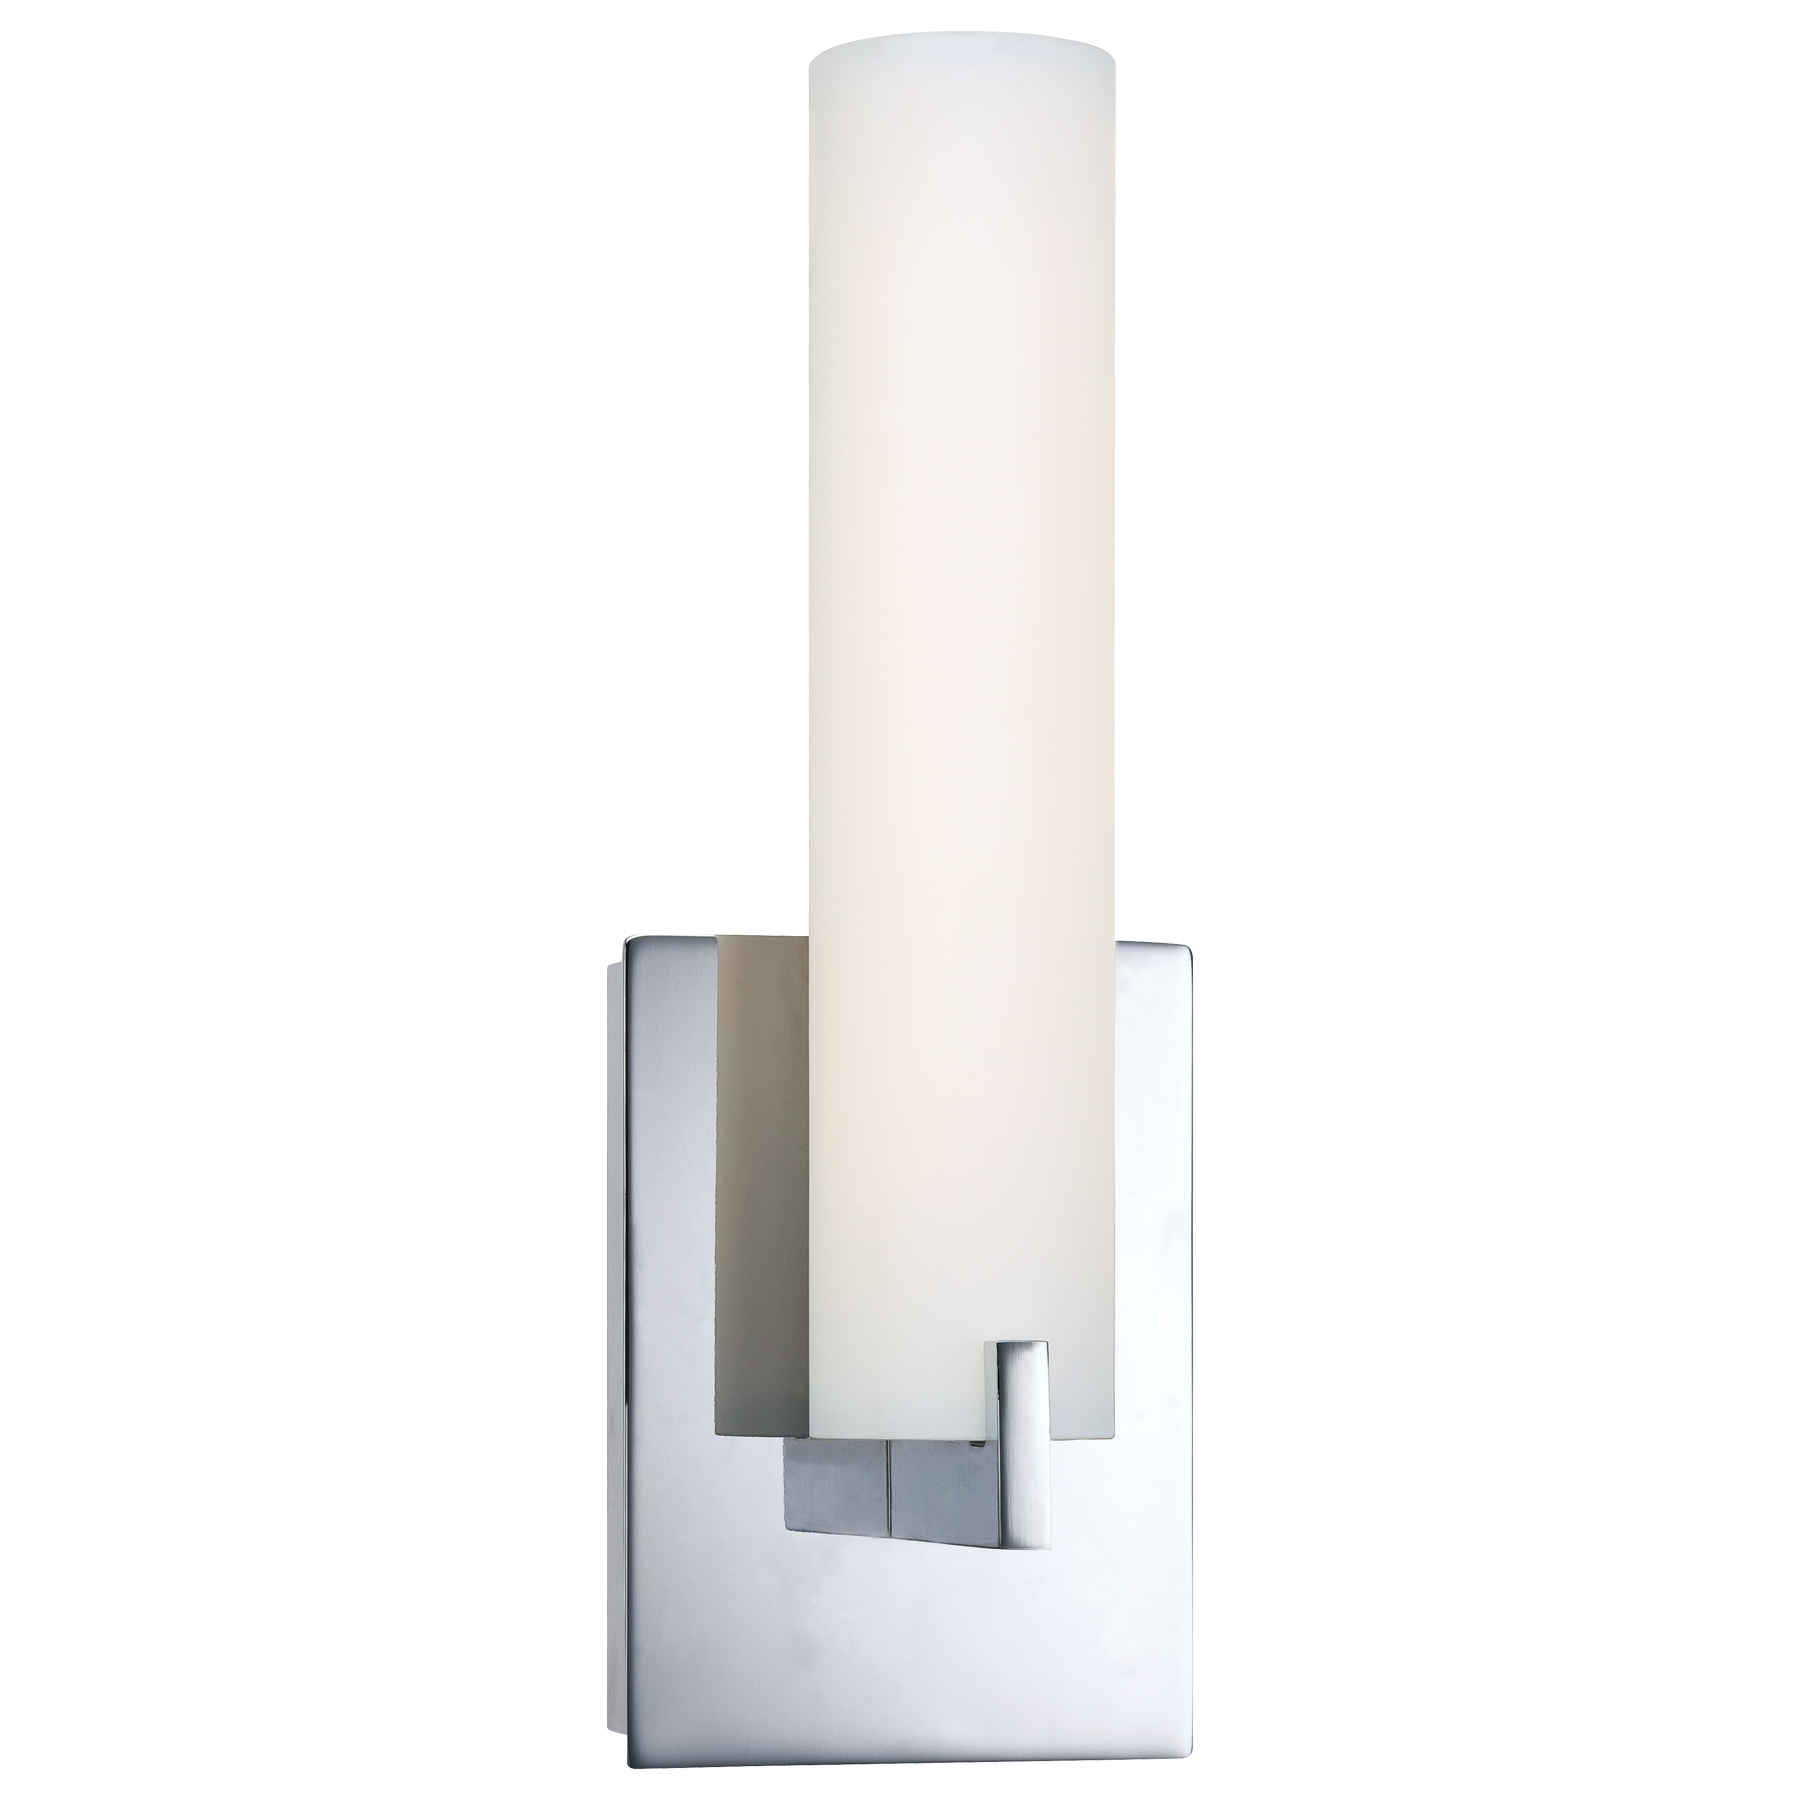 Tube Wall Light by George Kovacs | P5040-077-L